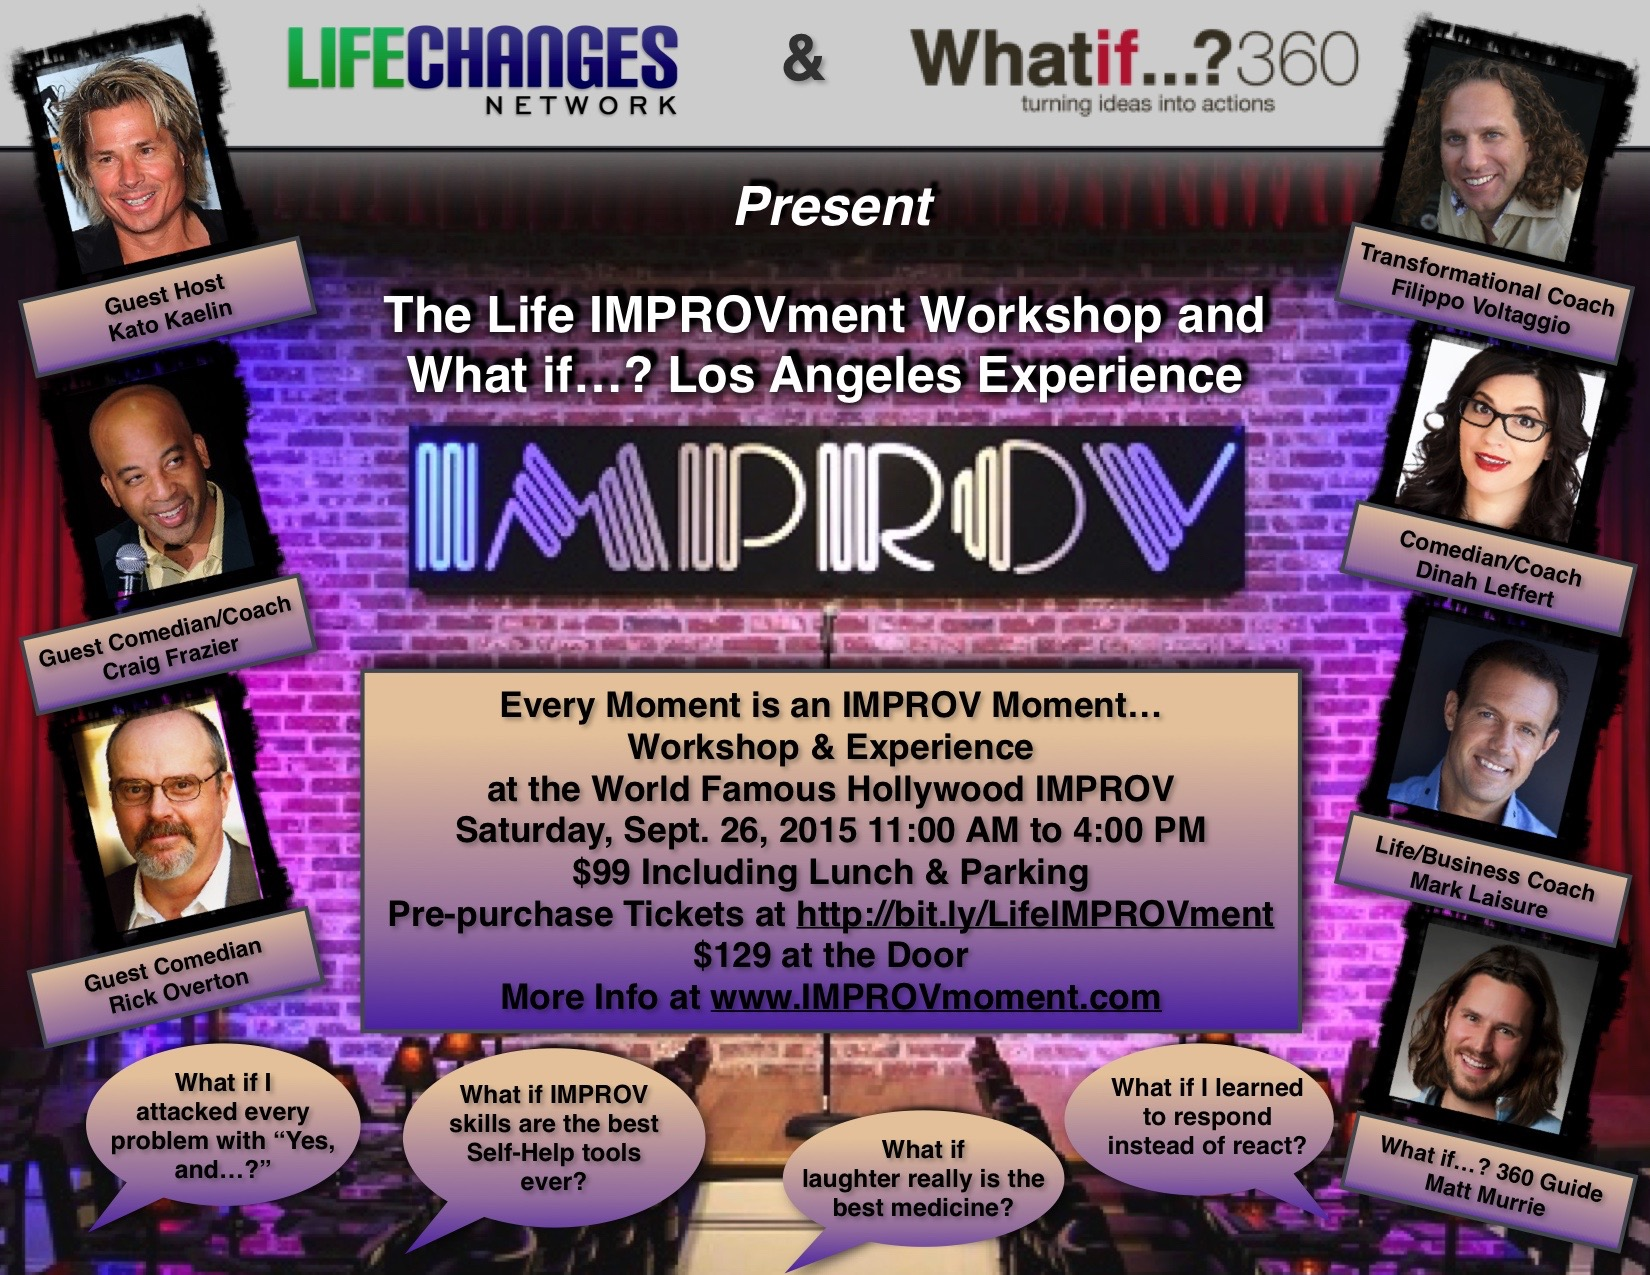 The Life IMPROVment Workshop & What if...? LA Experience September 26, 2015 at the Hollywood IMPROV